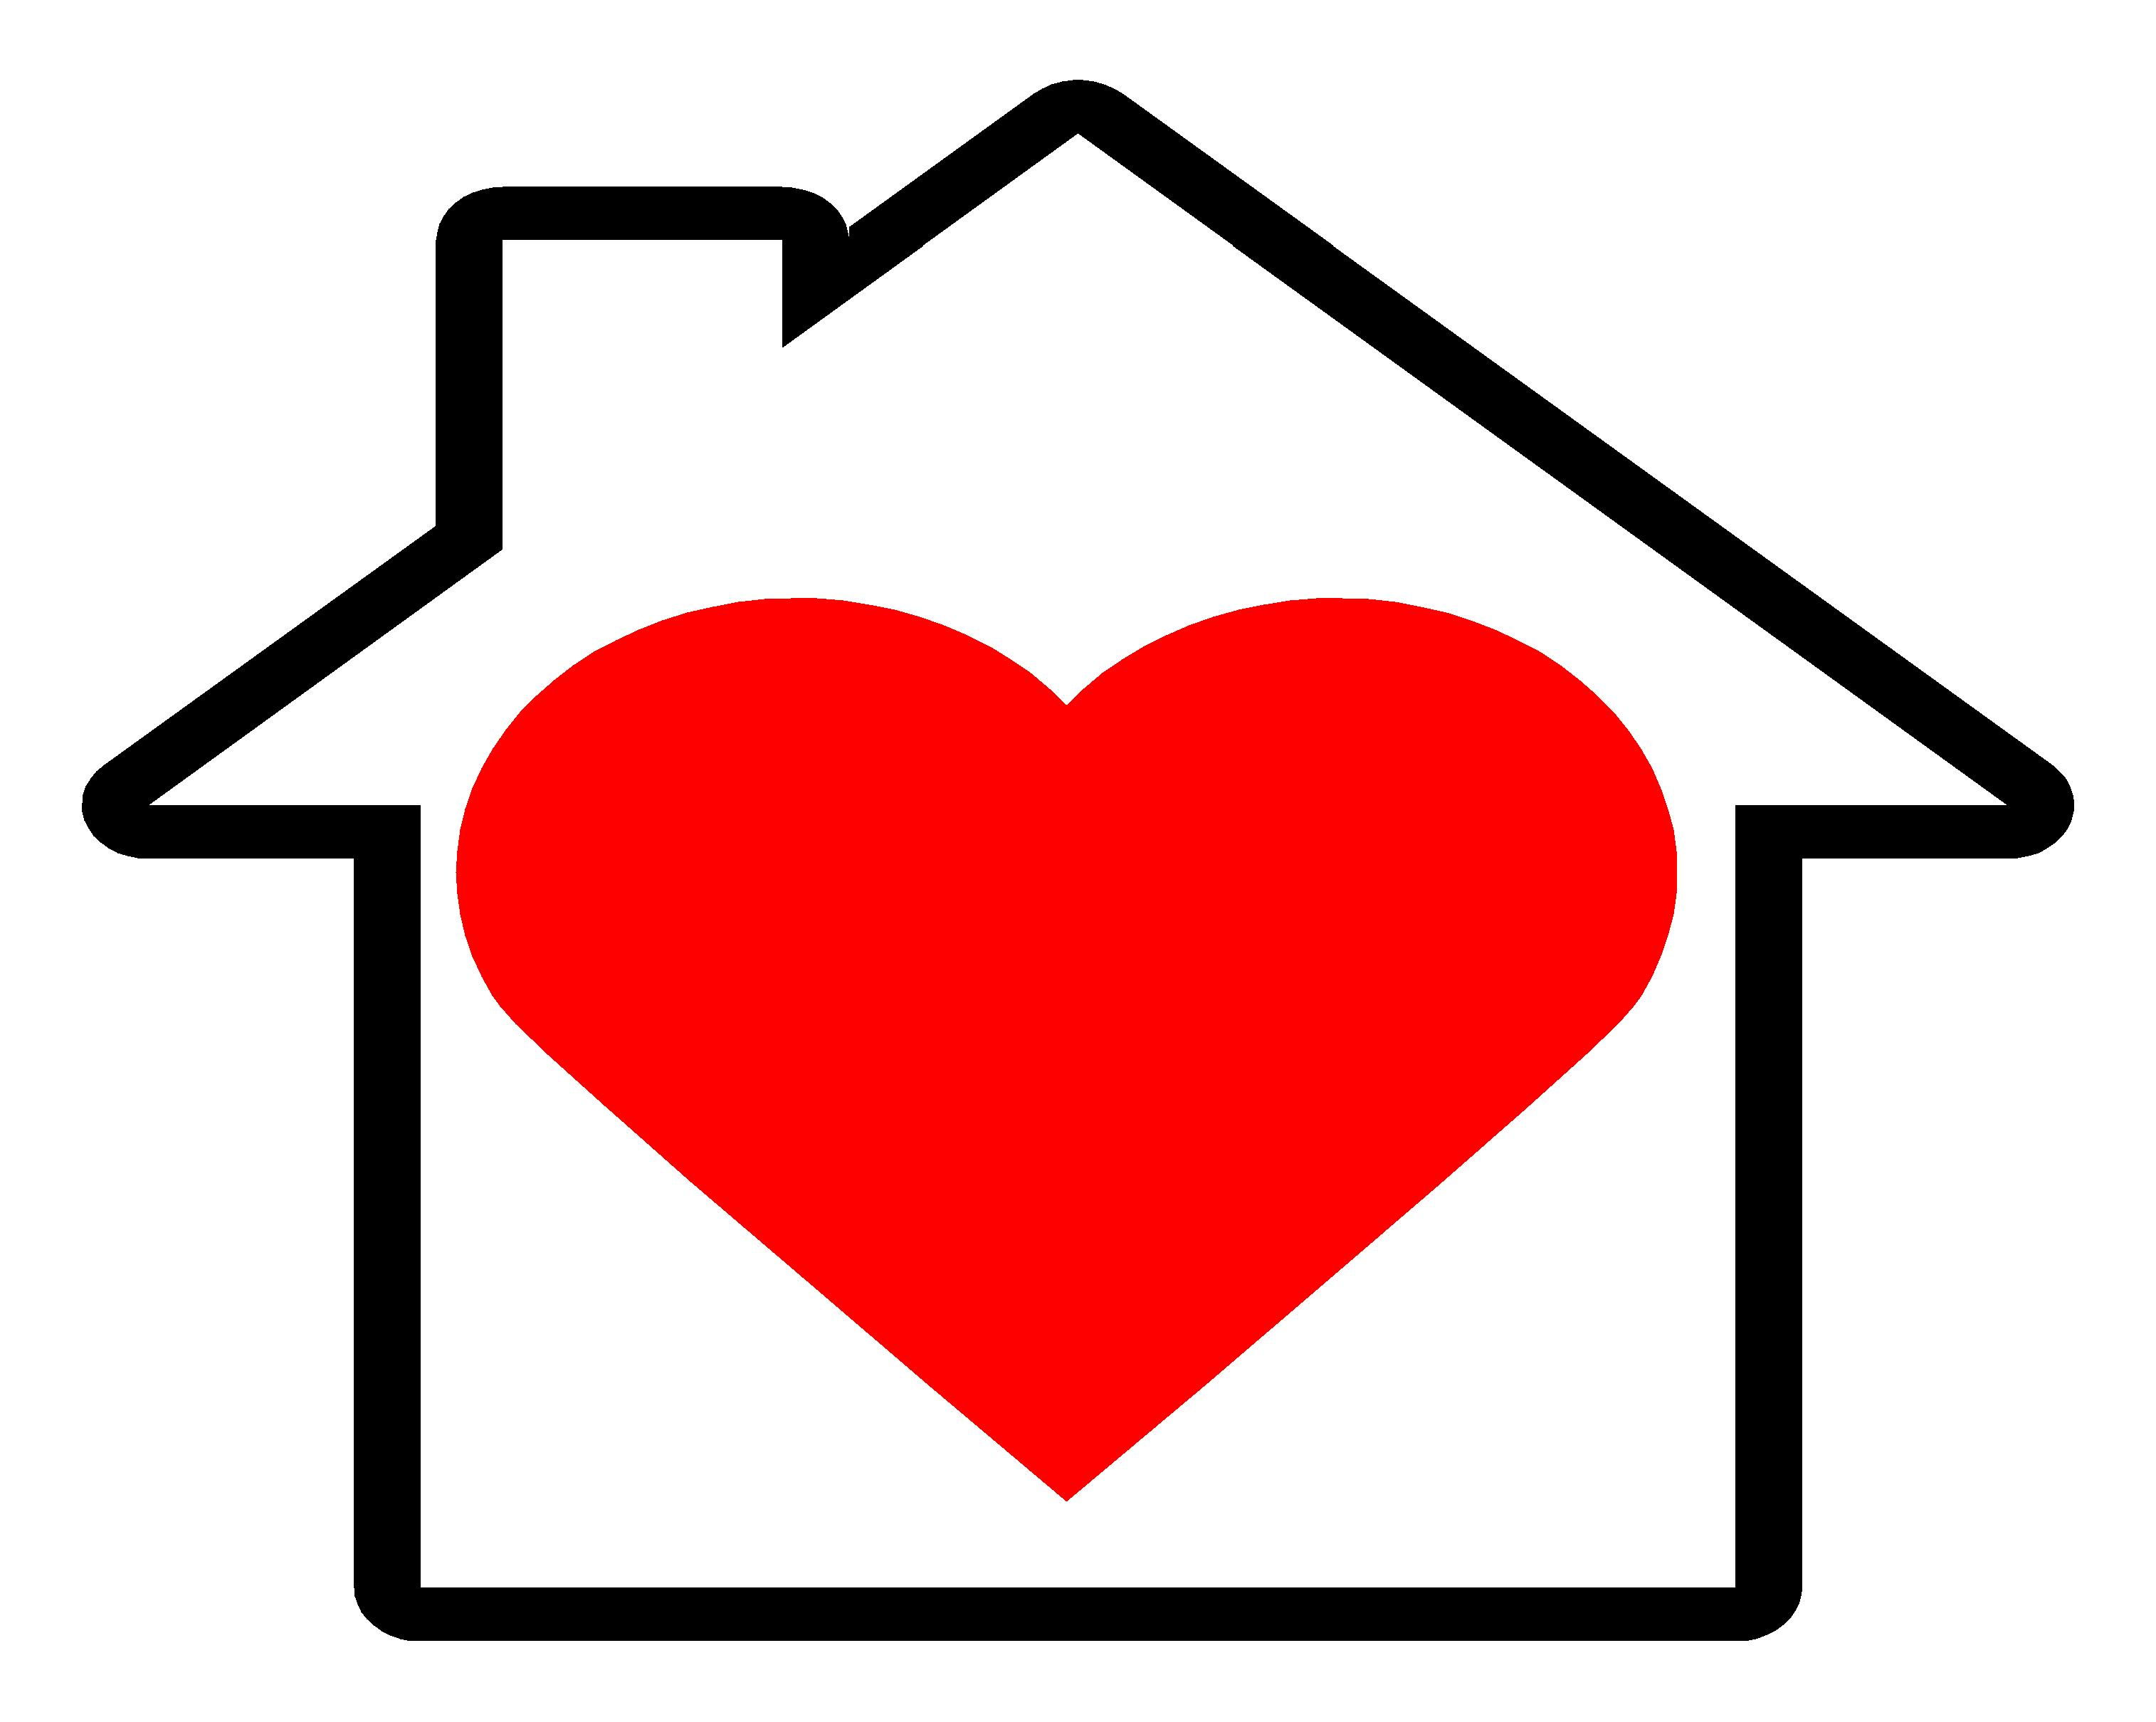 Caring clipart home. Health aide free download